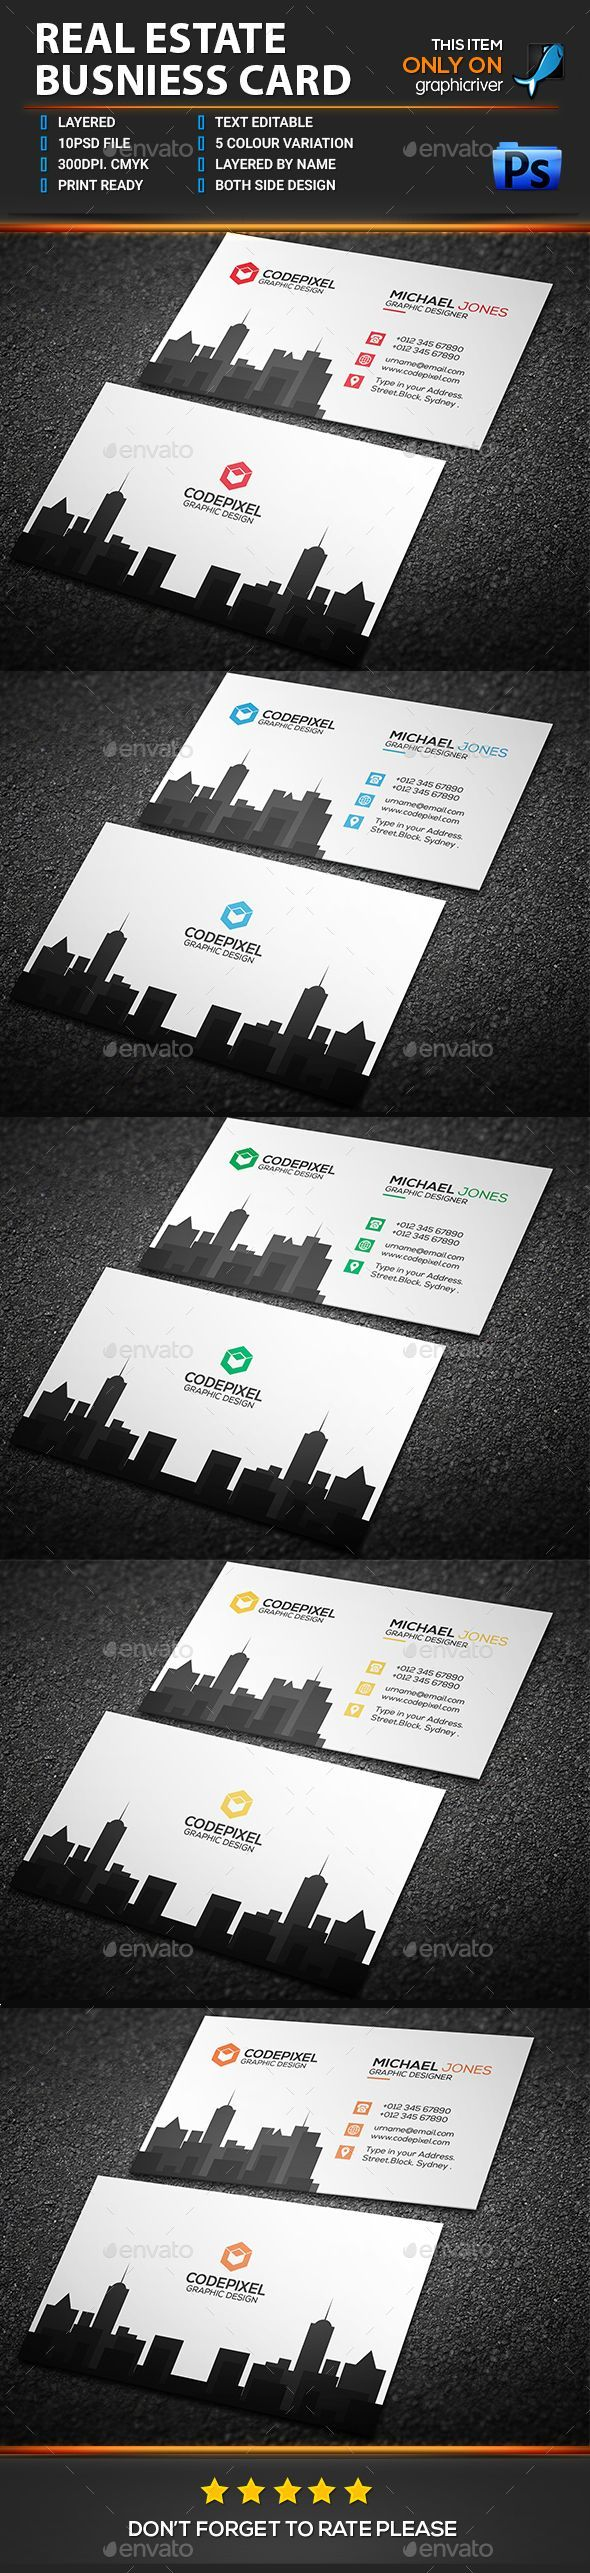 What to put on a photography business card choice image free 25 unique real estate business cards ideas on pinterest realtor real estate business card magicingreecefo choice magicingreecefo Choice Image